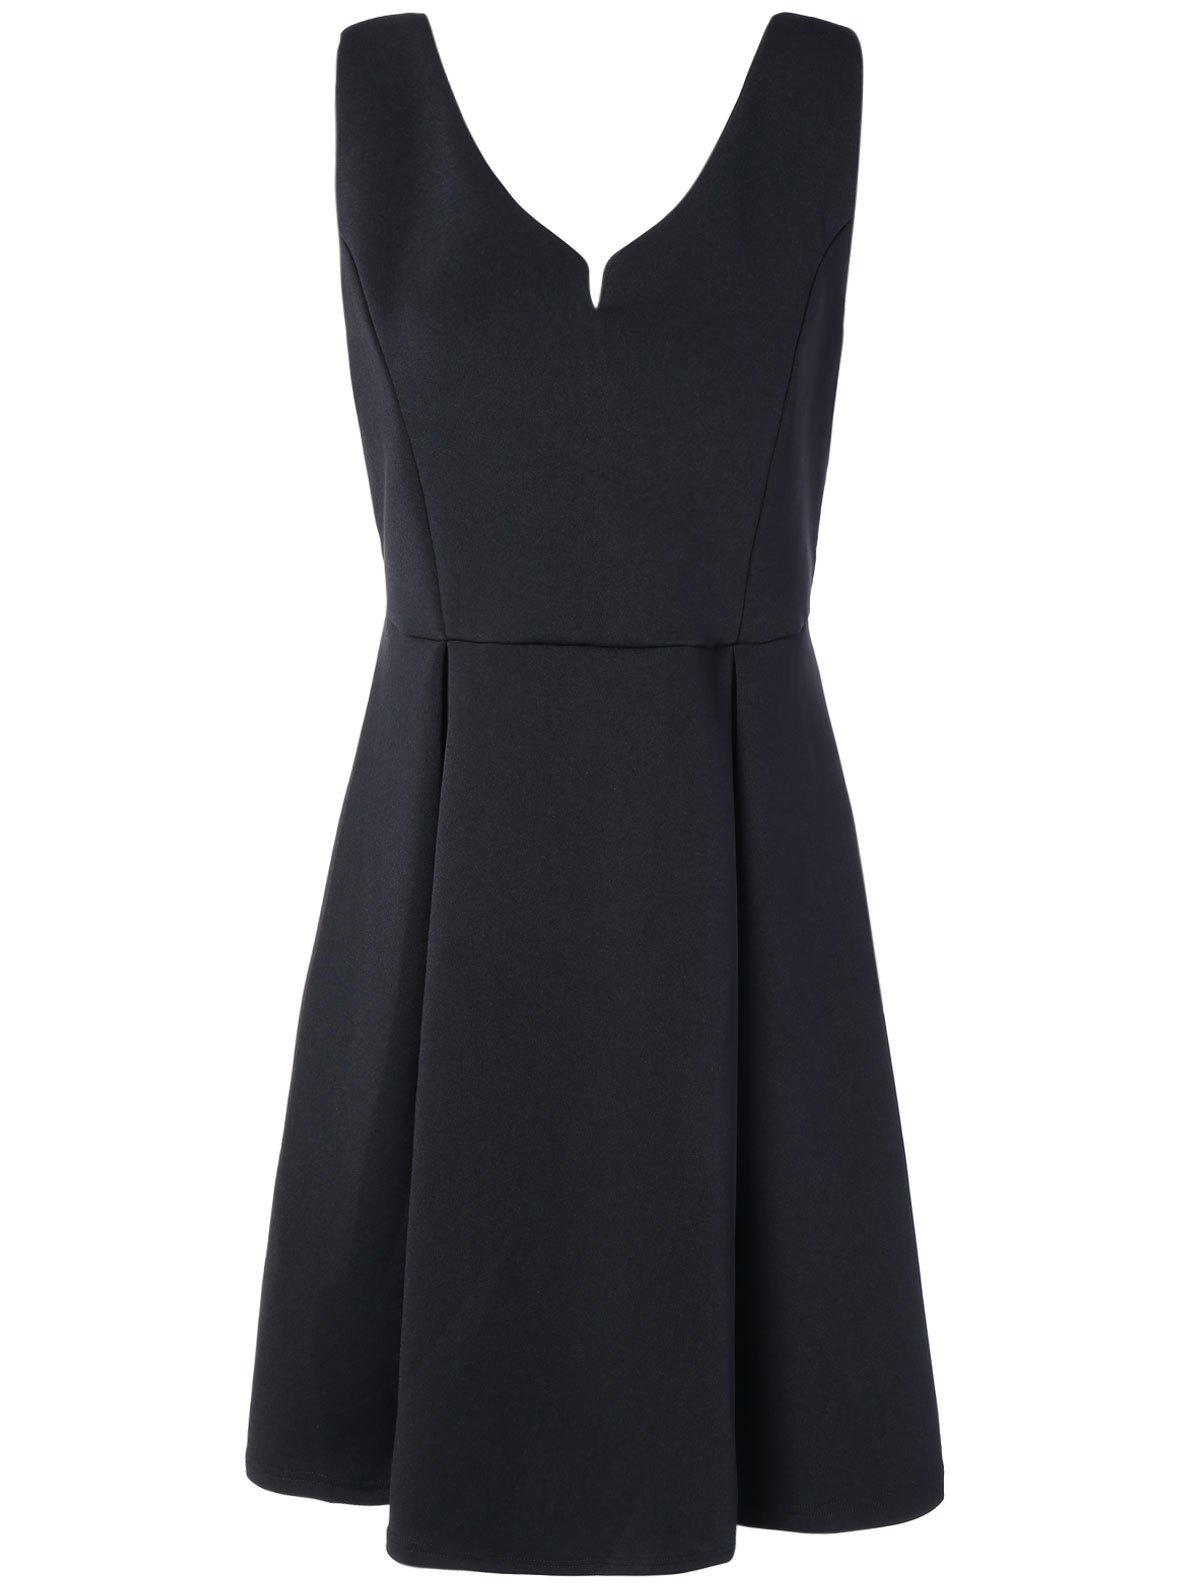 V Neck Fit and Flare Cocktail Dress - BLACK M